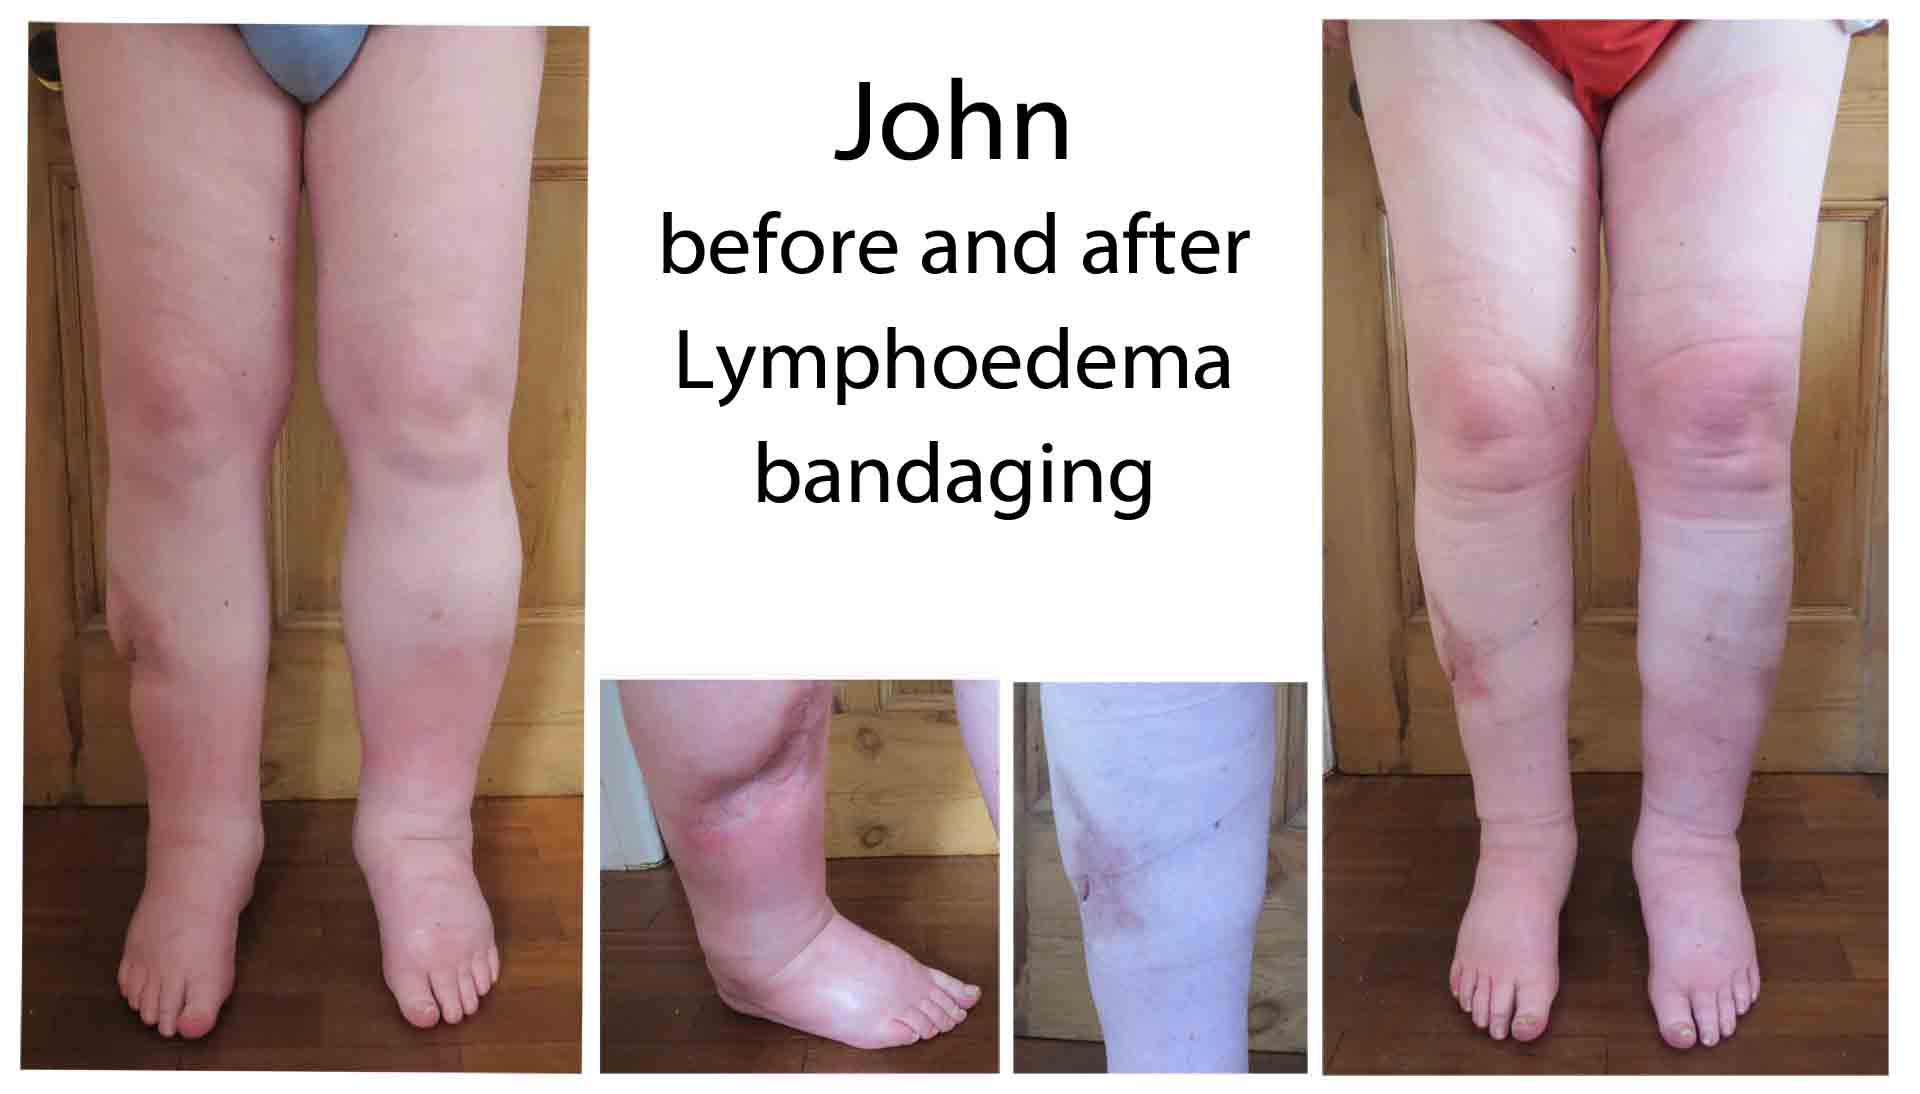 John before and after lymphoedema bandaging